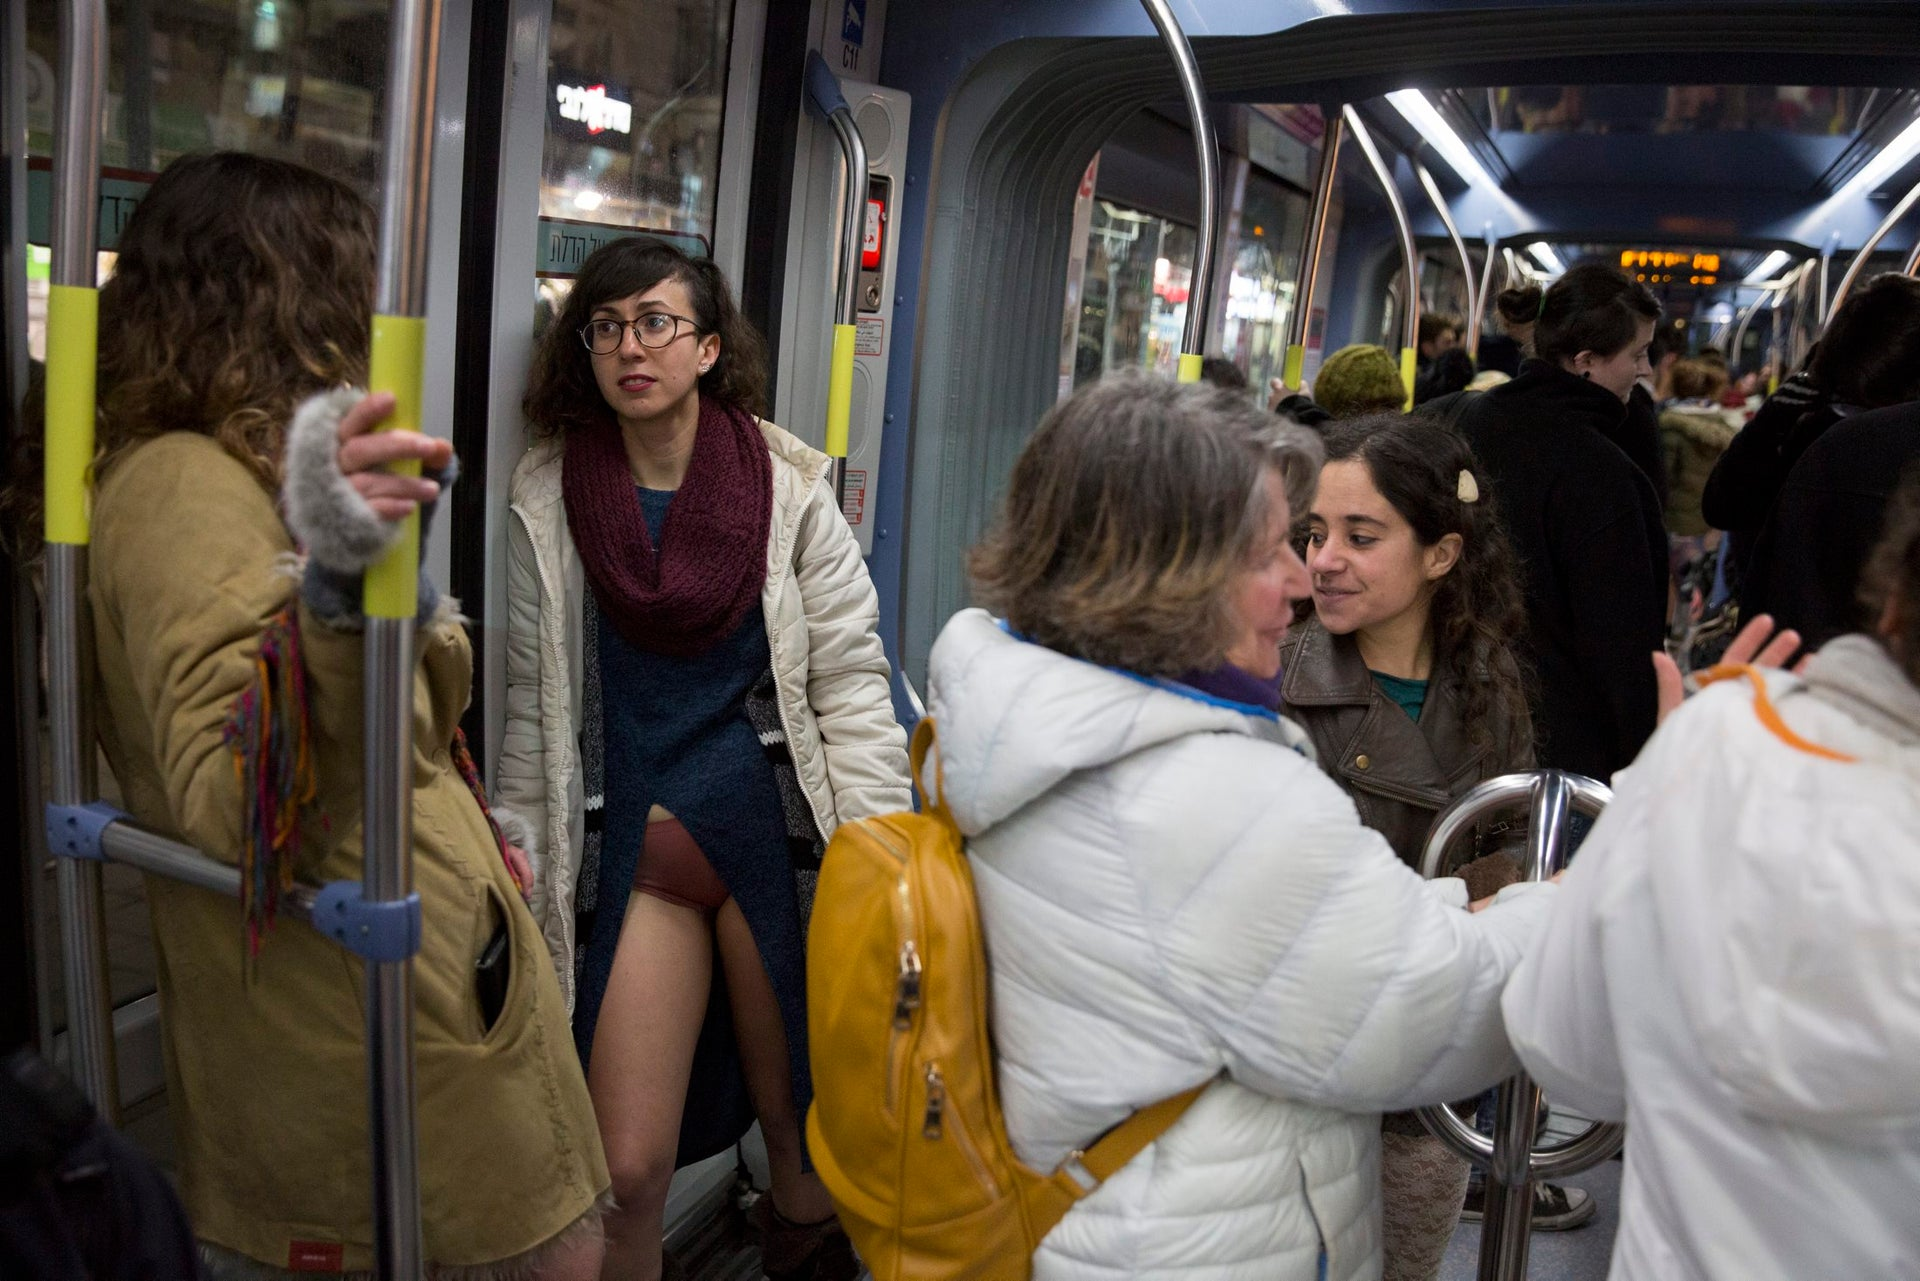 """Passengers on the Jerusalem light rail participate in the """"No Pants Subway Ride,"""" January 15, 2017."""